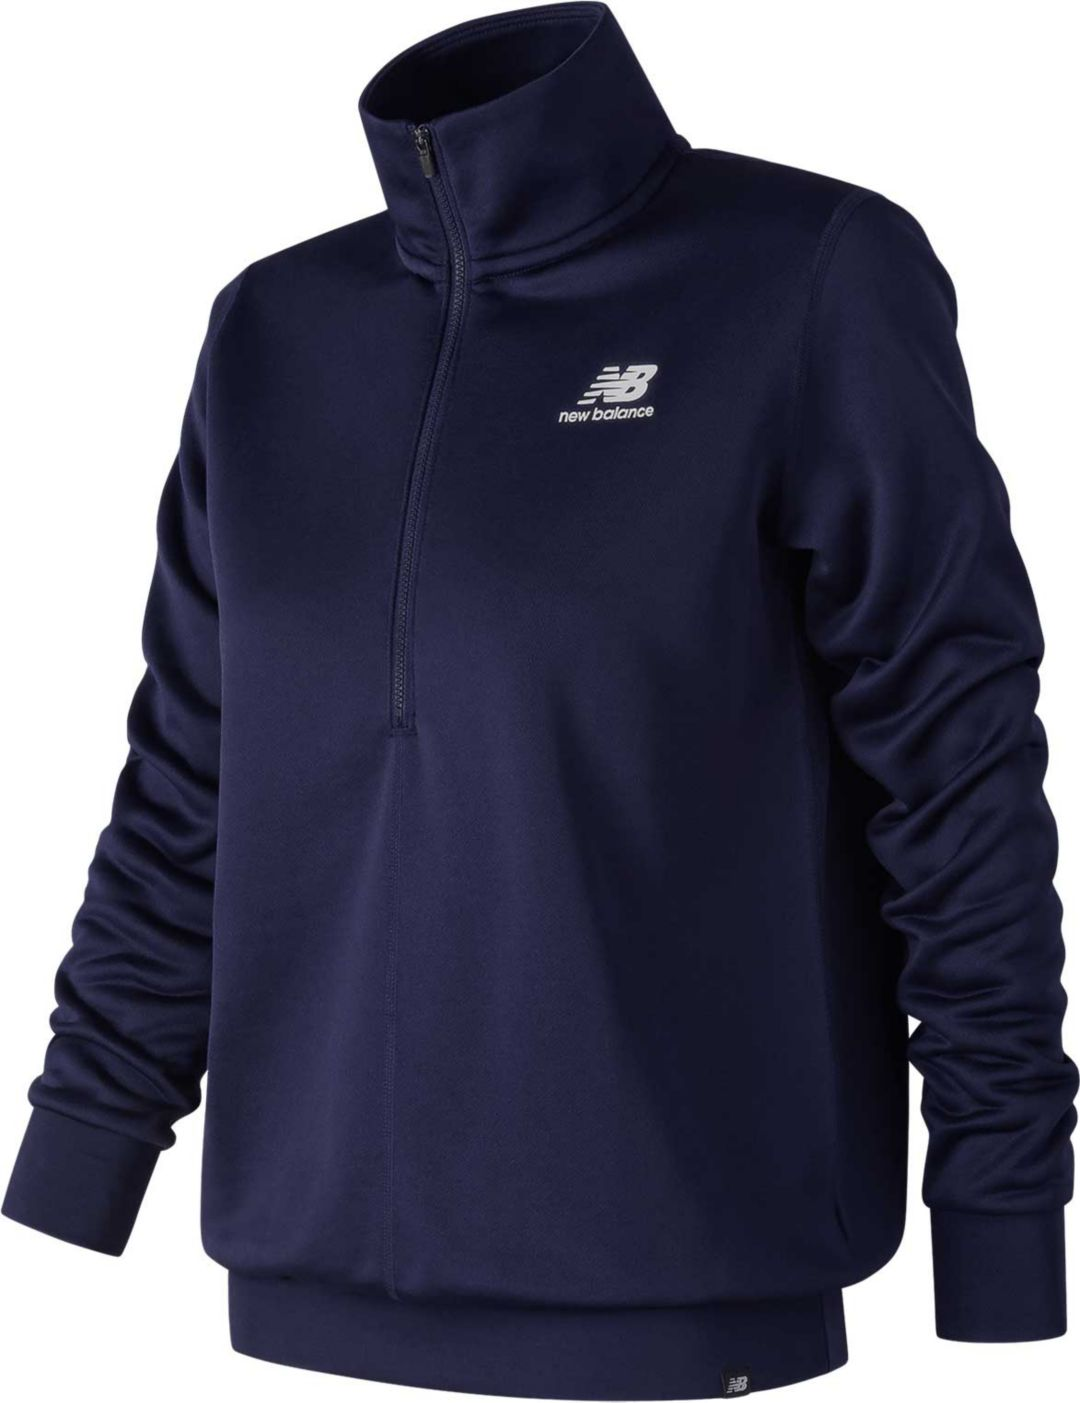 New Balance Women's Essentials Half Zip Pullover